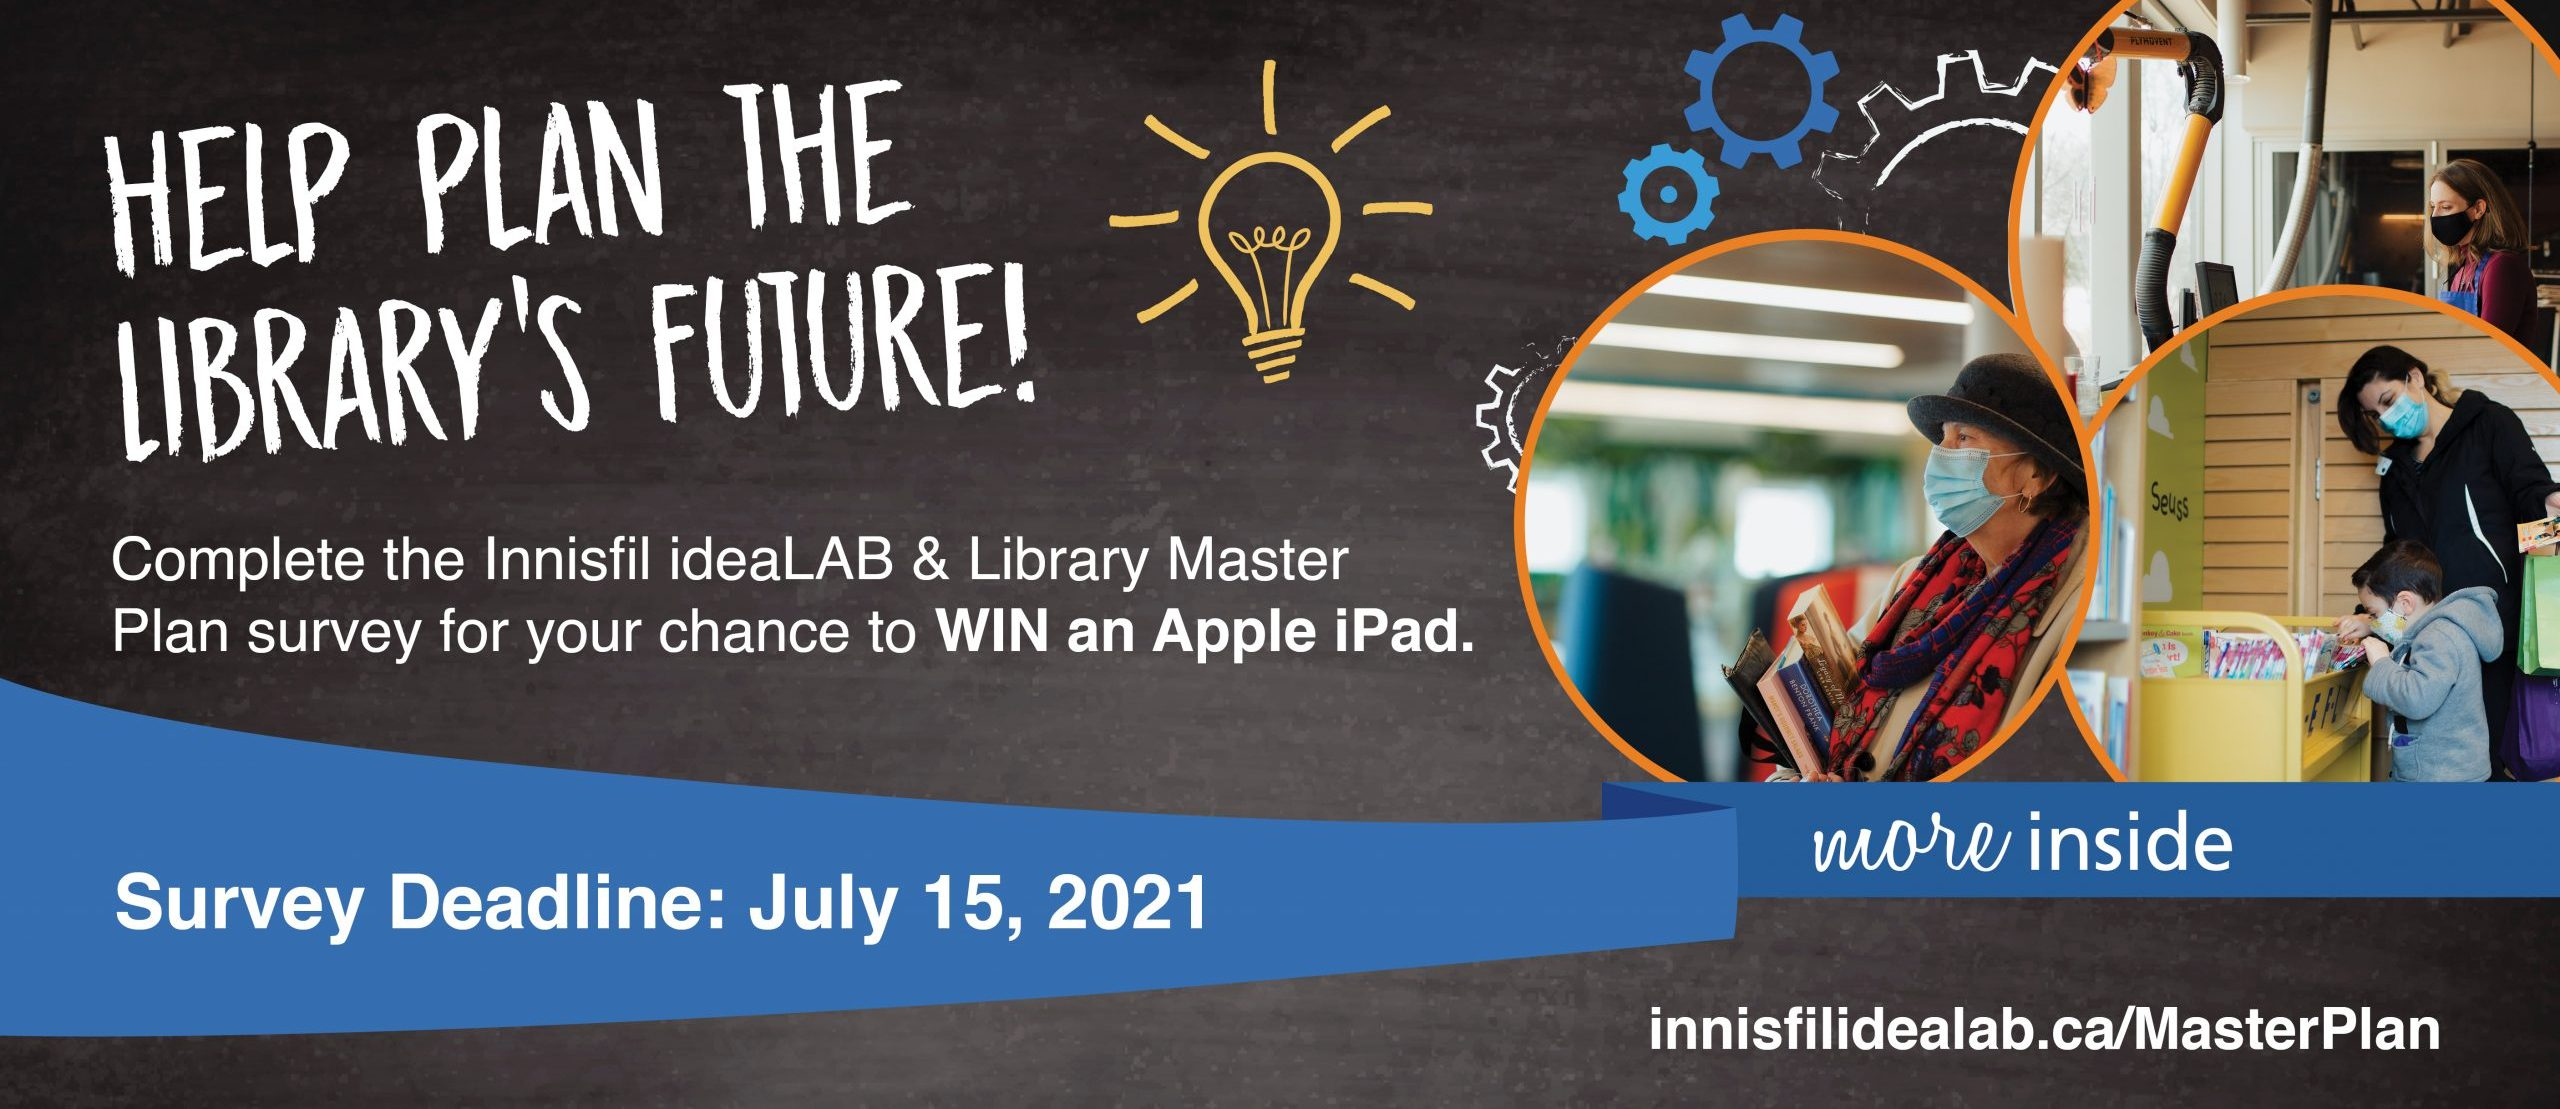 Complete the Innisfil ideaLAB & Library Master Plan survey for your chance to WIN an Apple iPad.